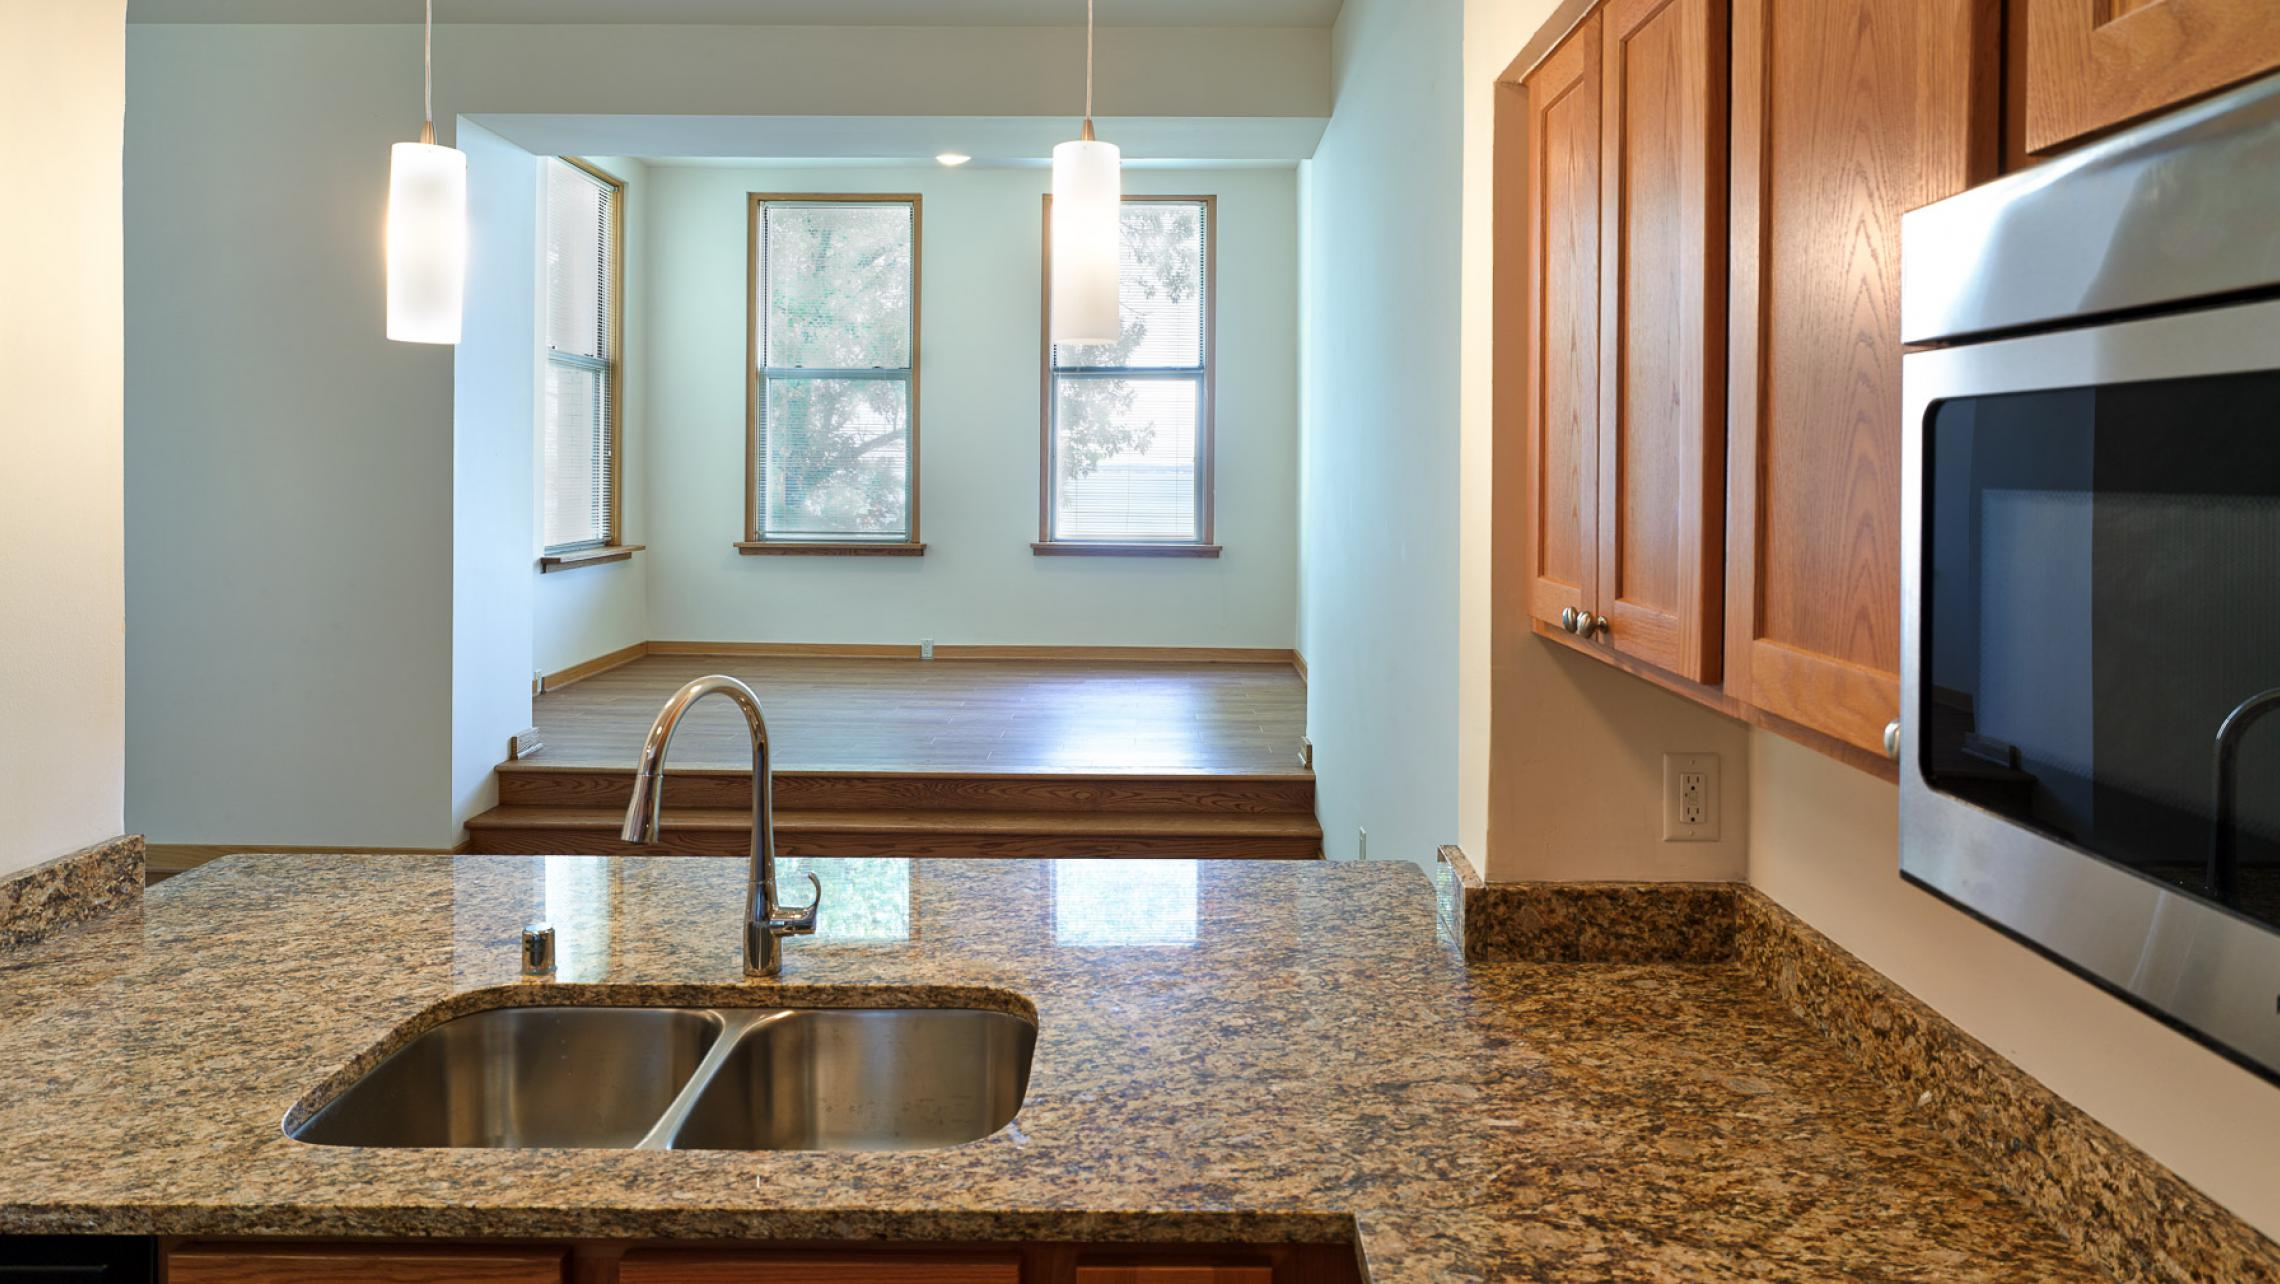 ULI Lincoln School Apartments, Stainless Steel Appliances, Granite Countertops